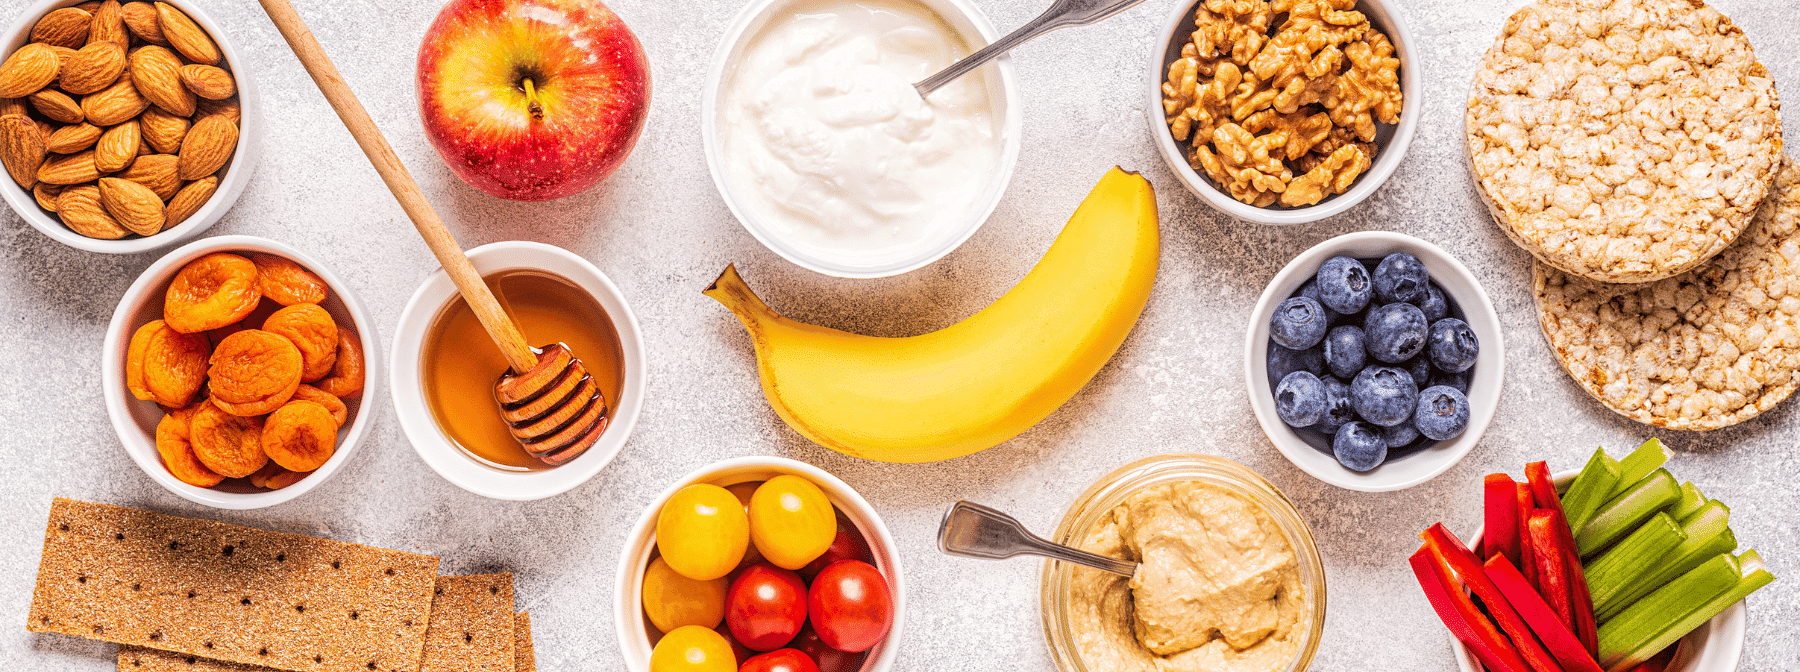 21 Low Calorie Snacks To Keep You Full